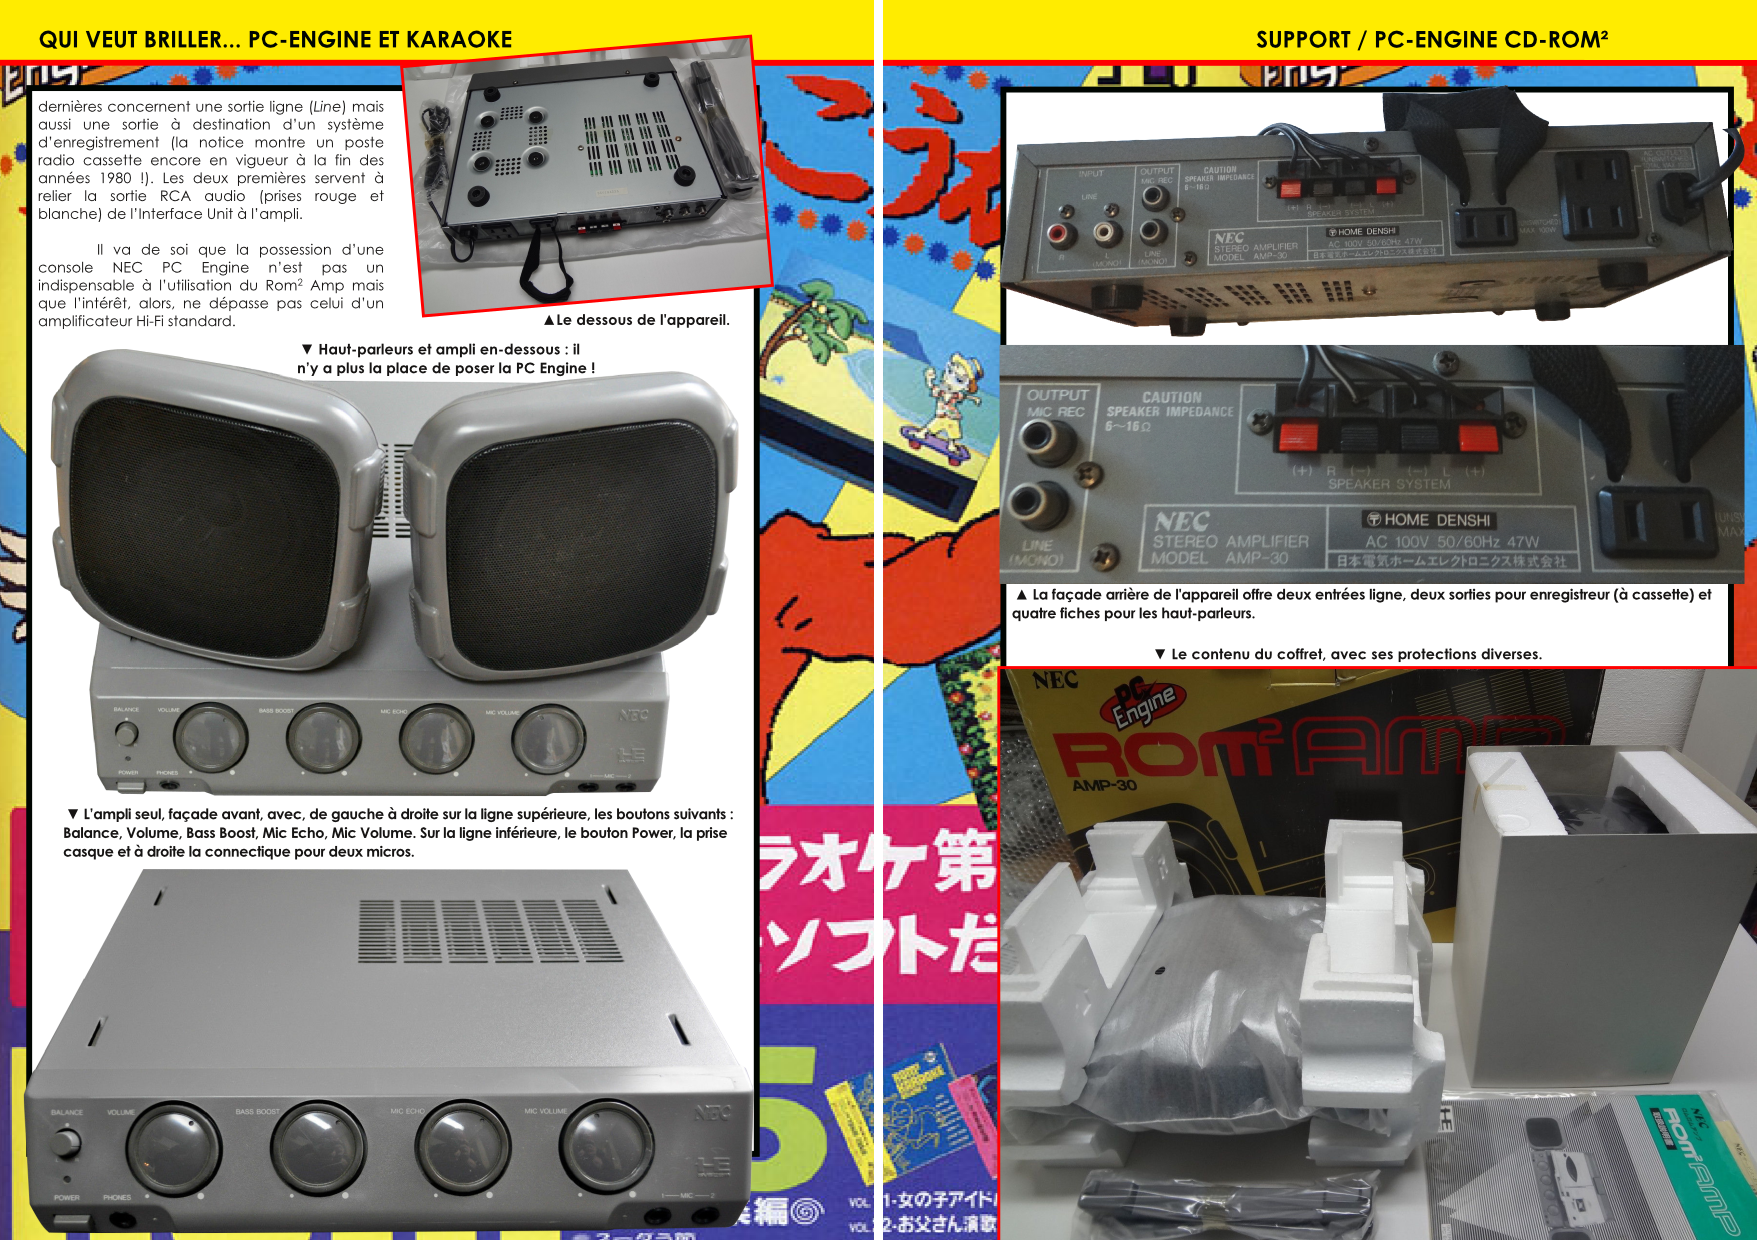 ROM ROM AMP PC-Engine et Karaoke article du magazine Côté Gamers